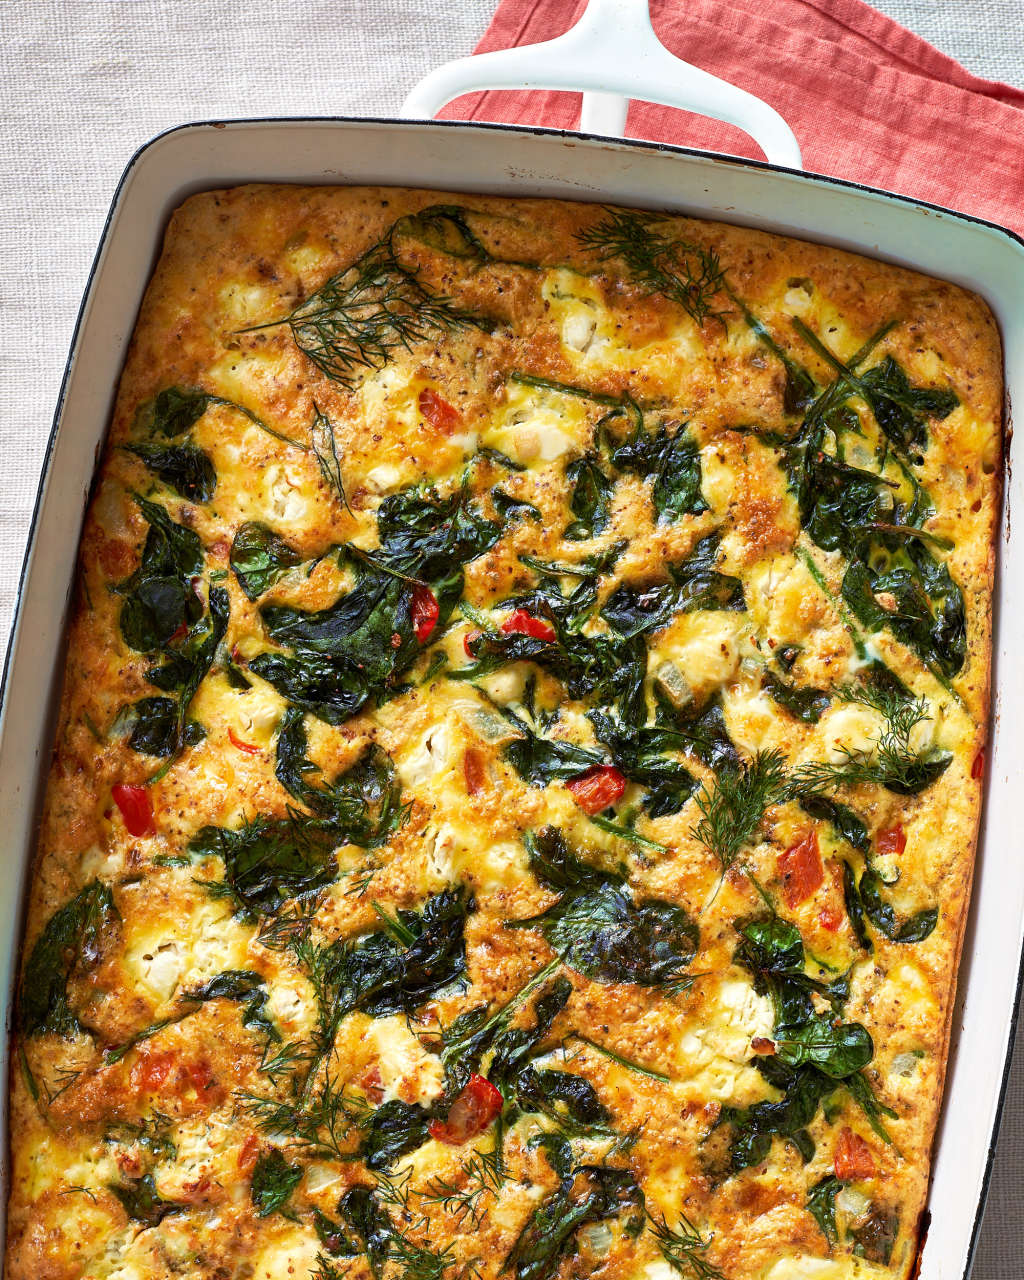 Eat This Make-Ahead Baked Greek Omelet Any Time of Day